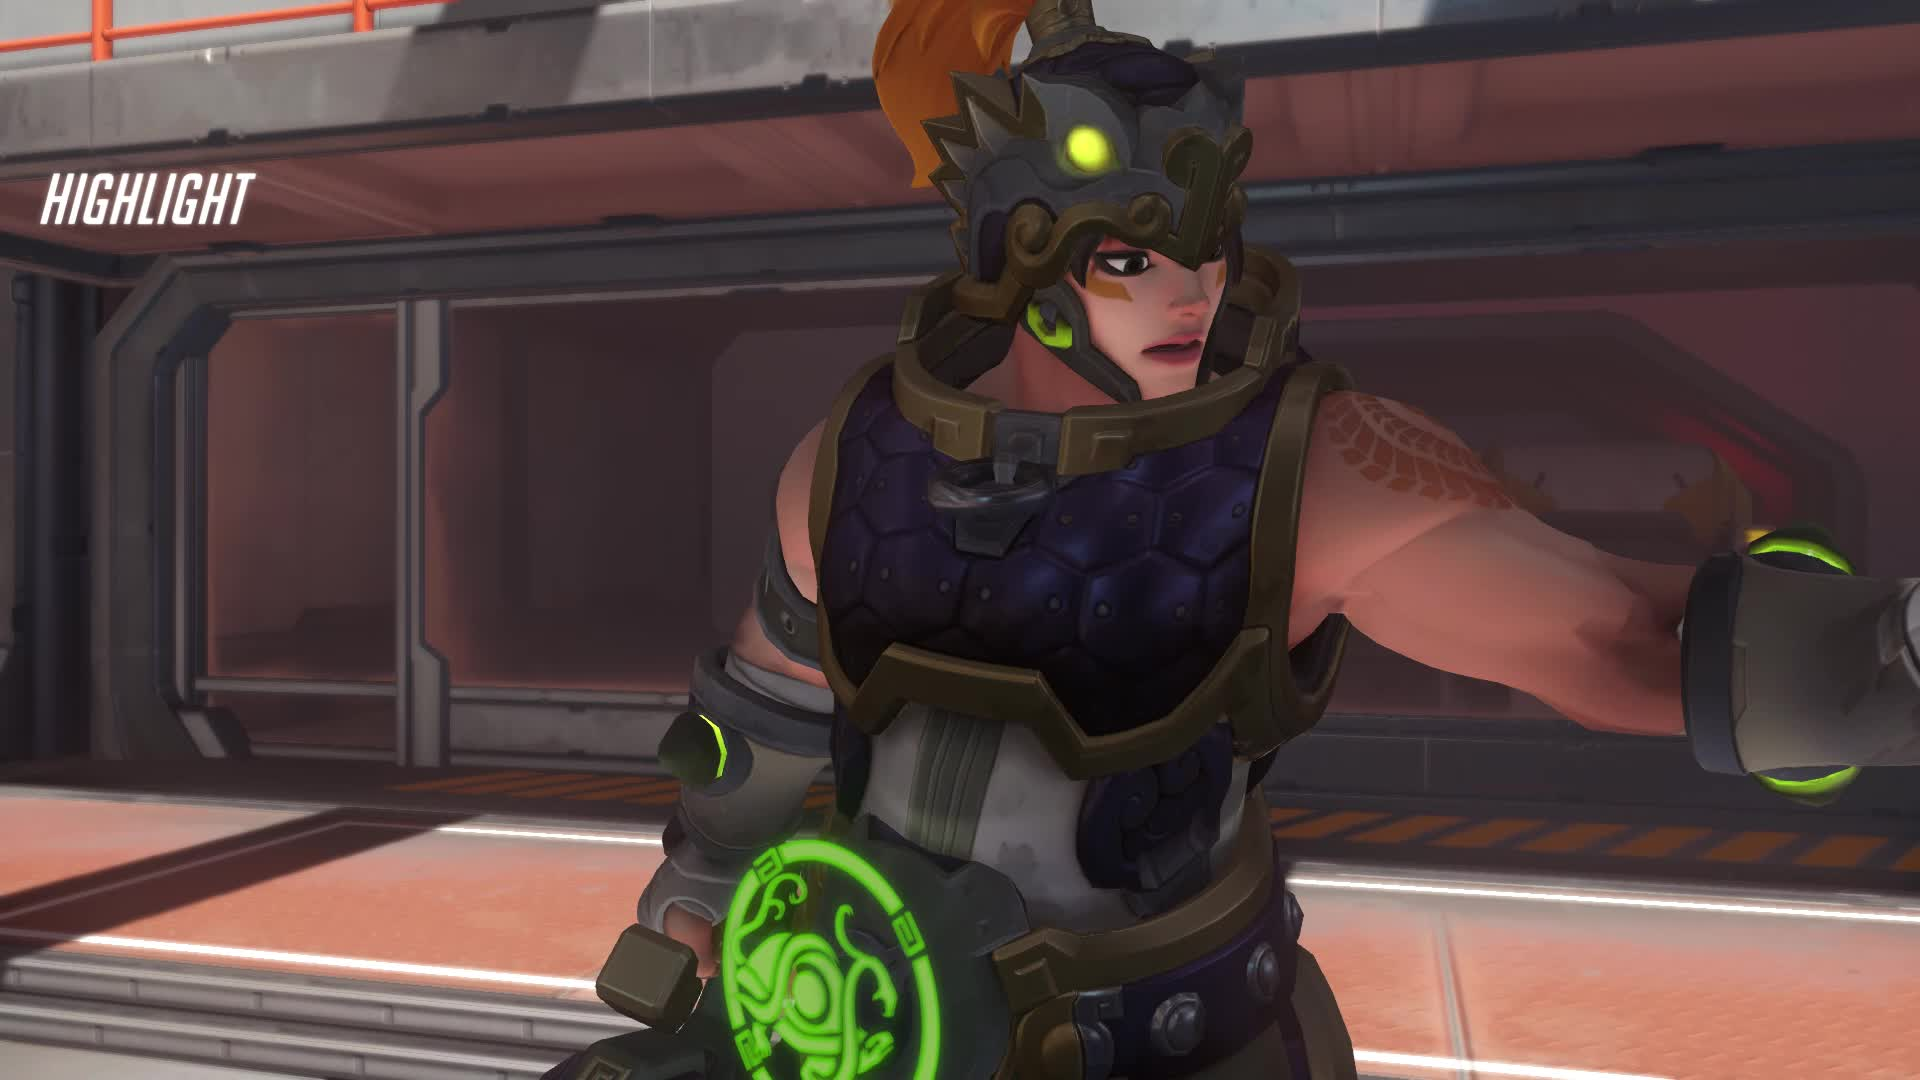 highlight, overwatch, zarya, gifsthatendtoosoon 18-08-13 18-43-17 GIFs